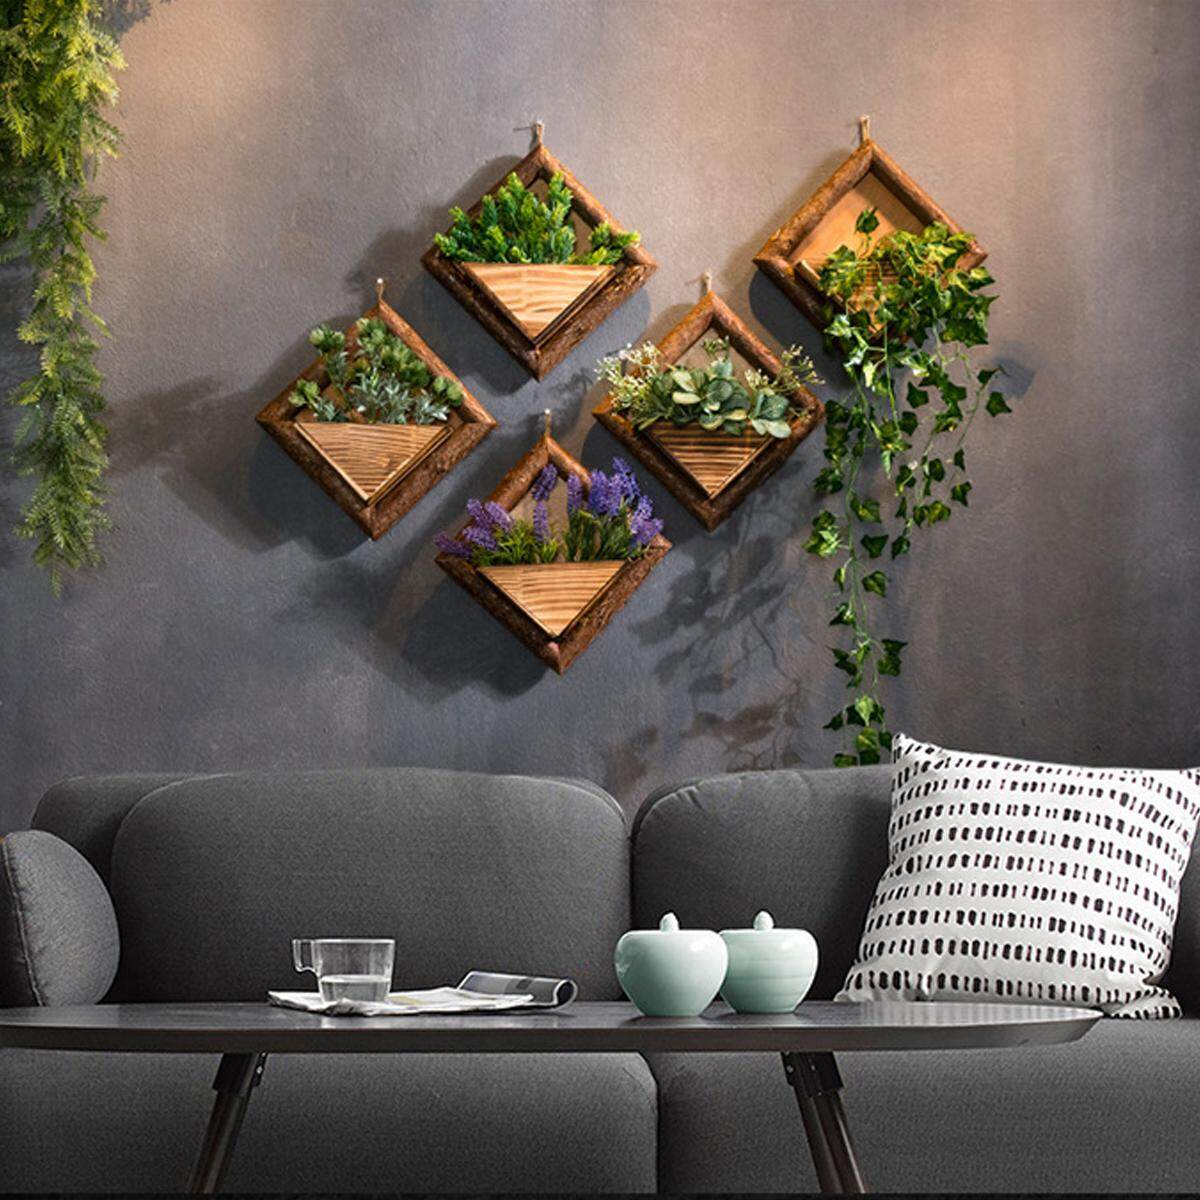 【Free Shipping + Flash Deal】1x Wooden Wall Mounted Hanging Rack Storage Shelf DIY Plant Flower Decoration